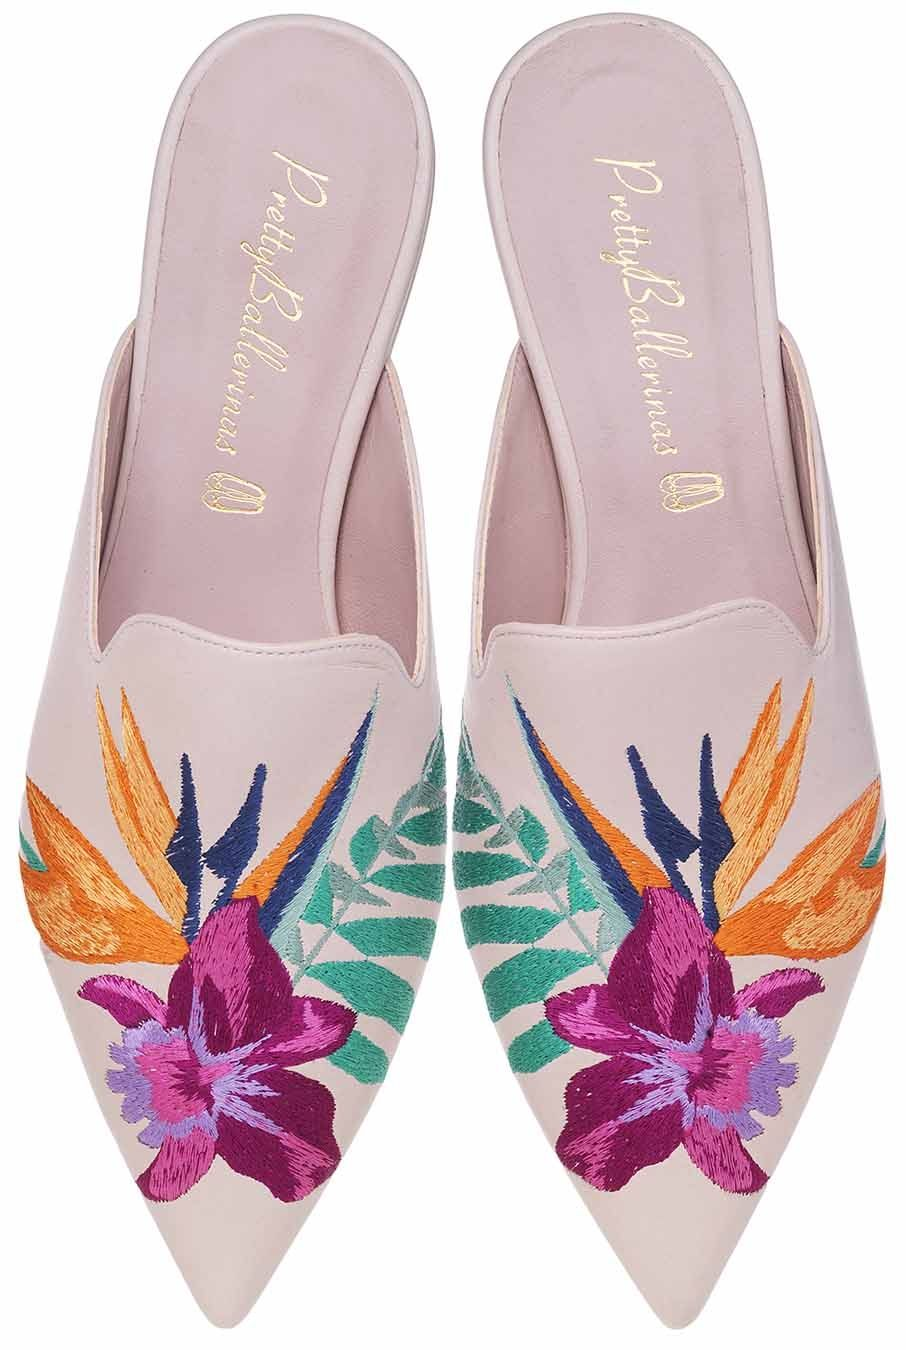 Ella in 2019 | Shoes I Love | Pretty ballerina shoes, Shoes